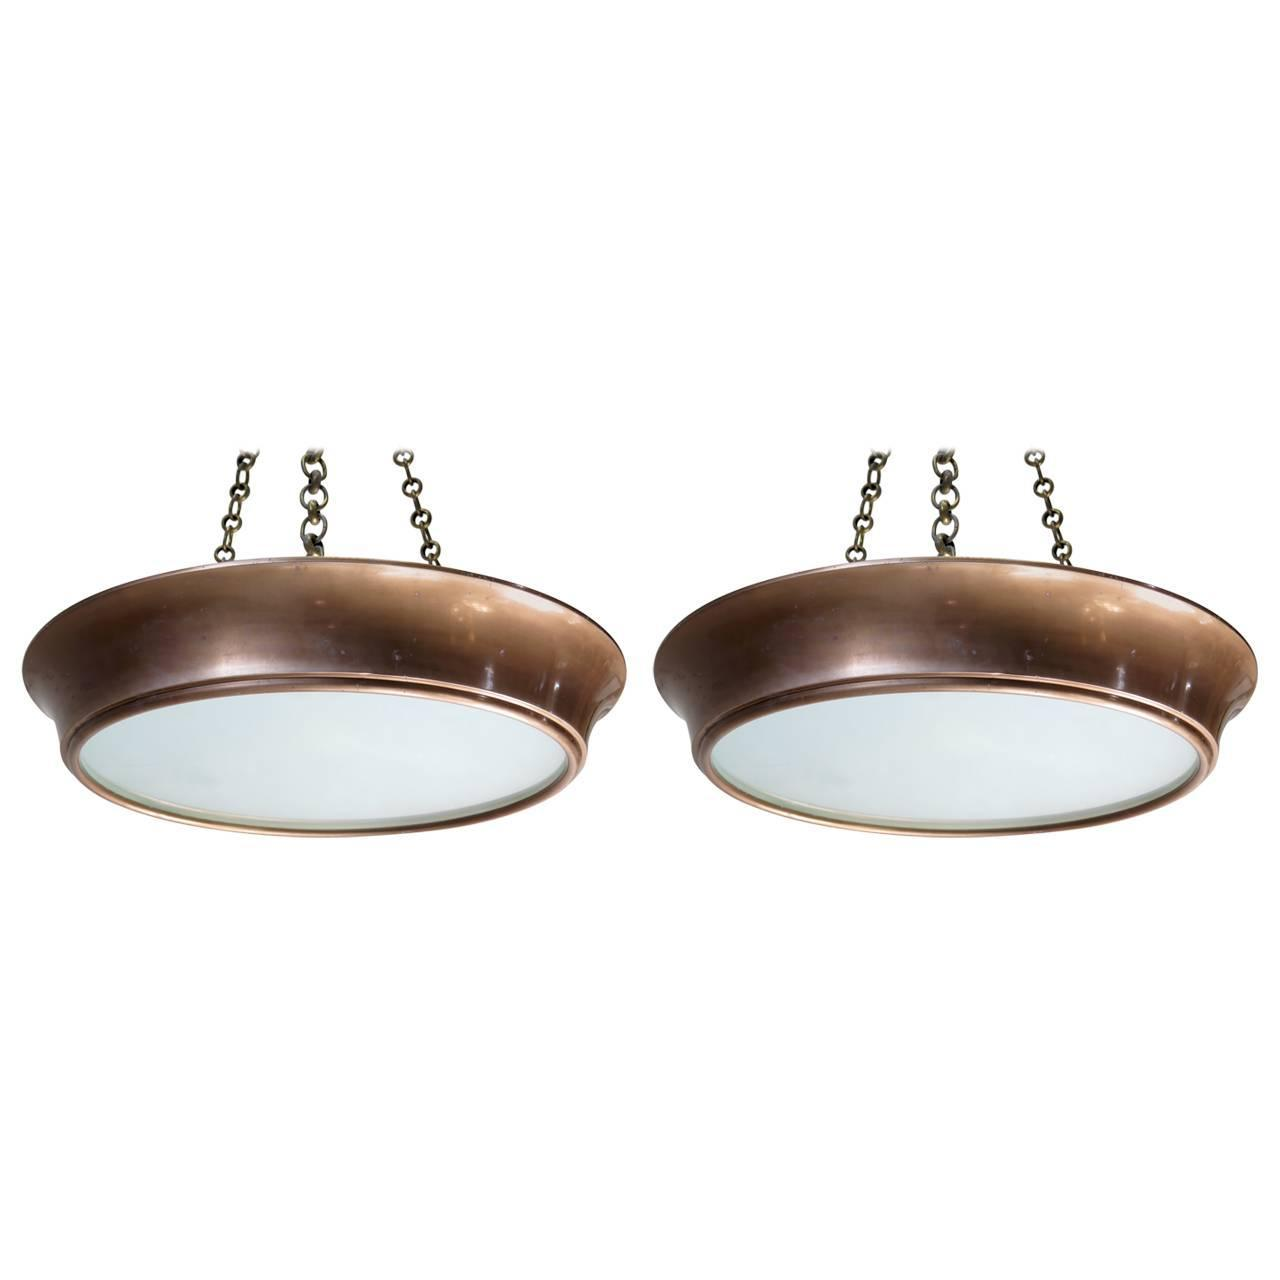 Round Hanging Light Fixture